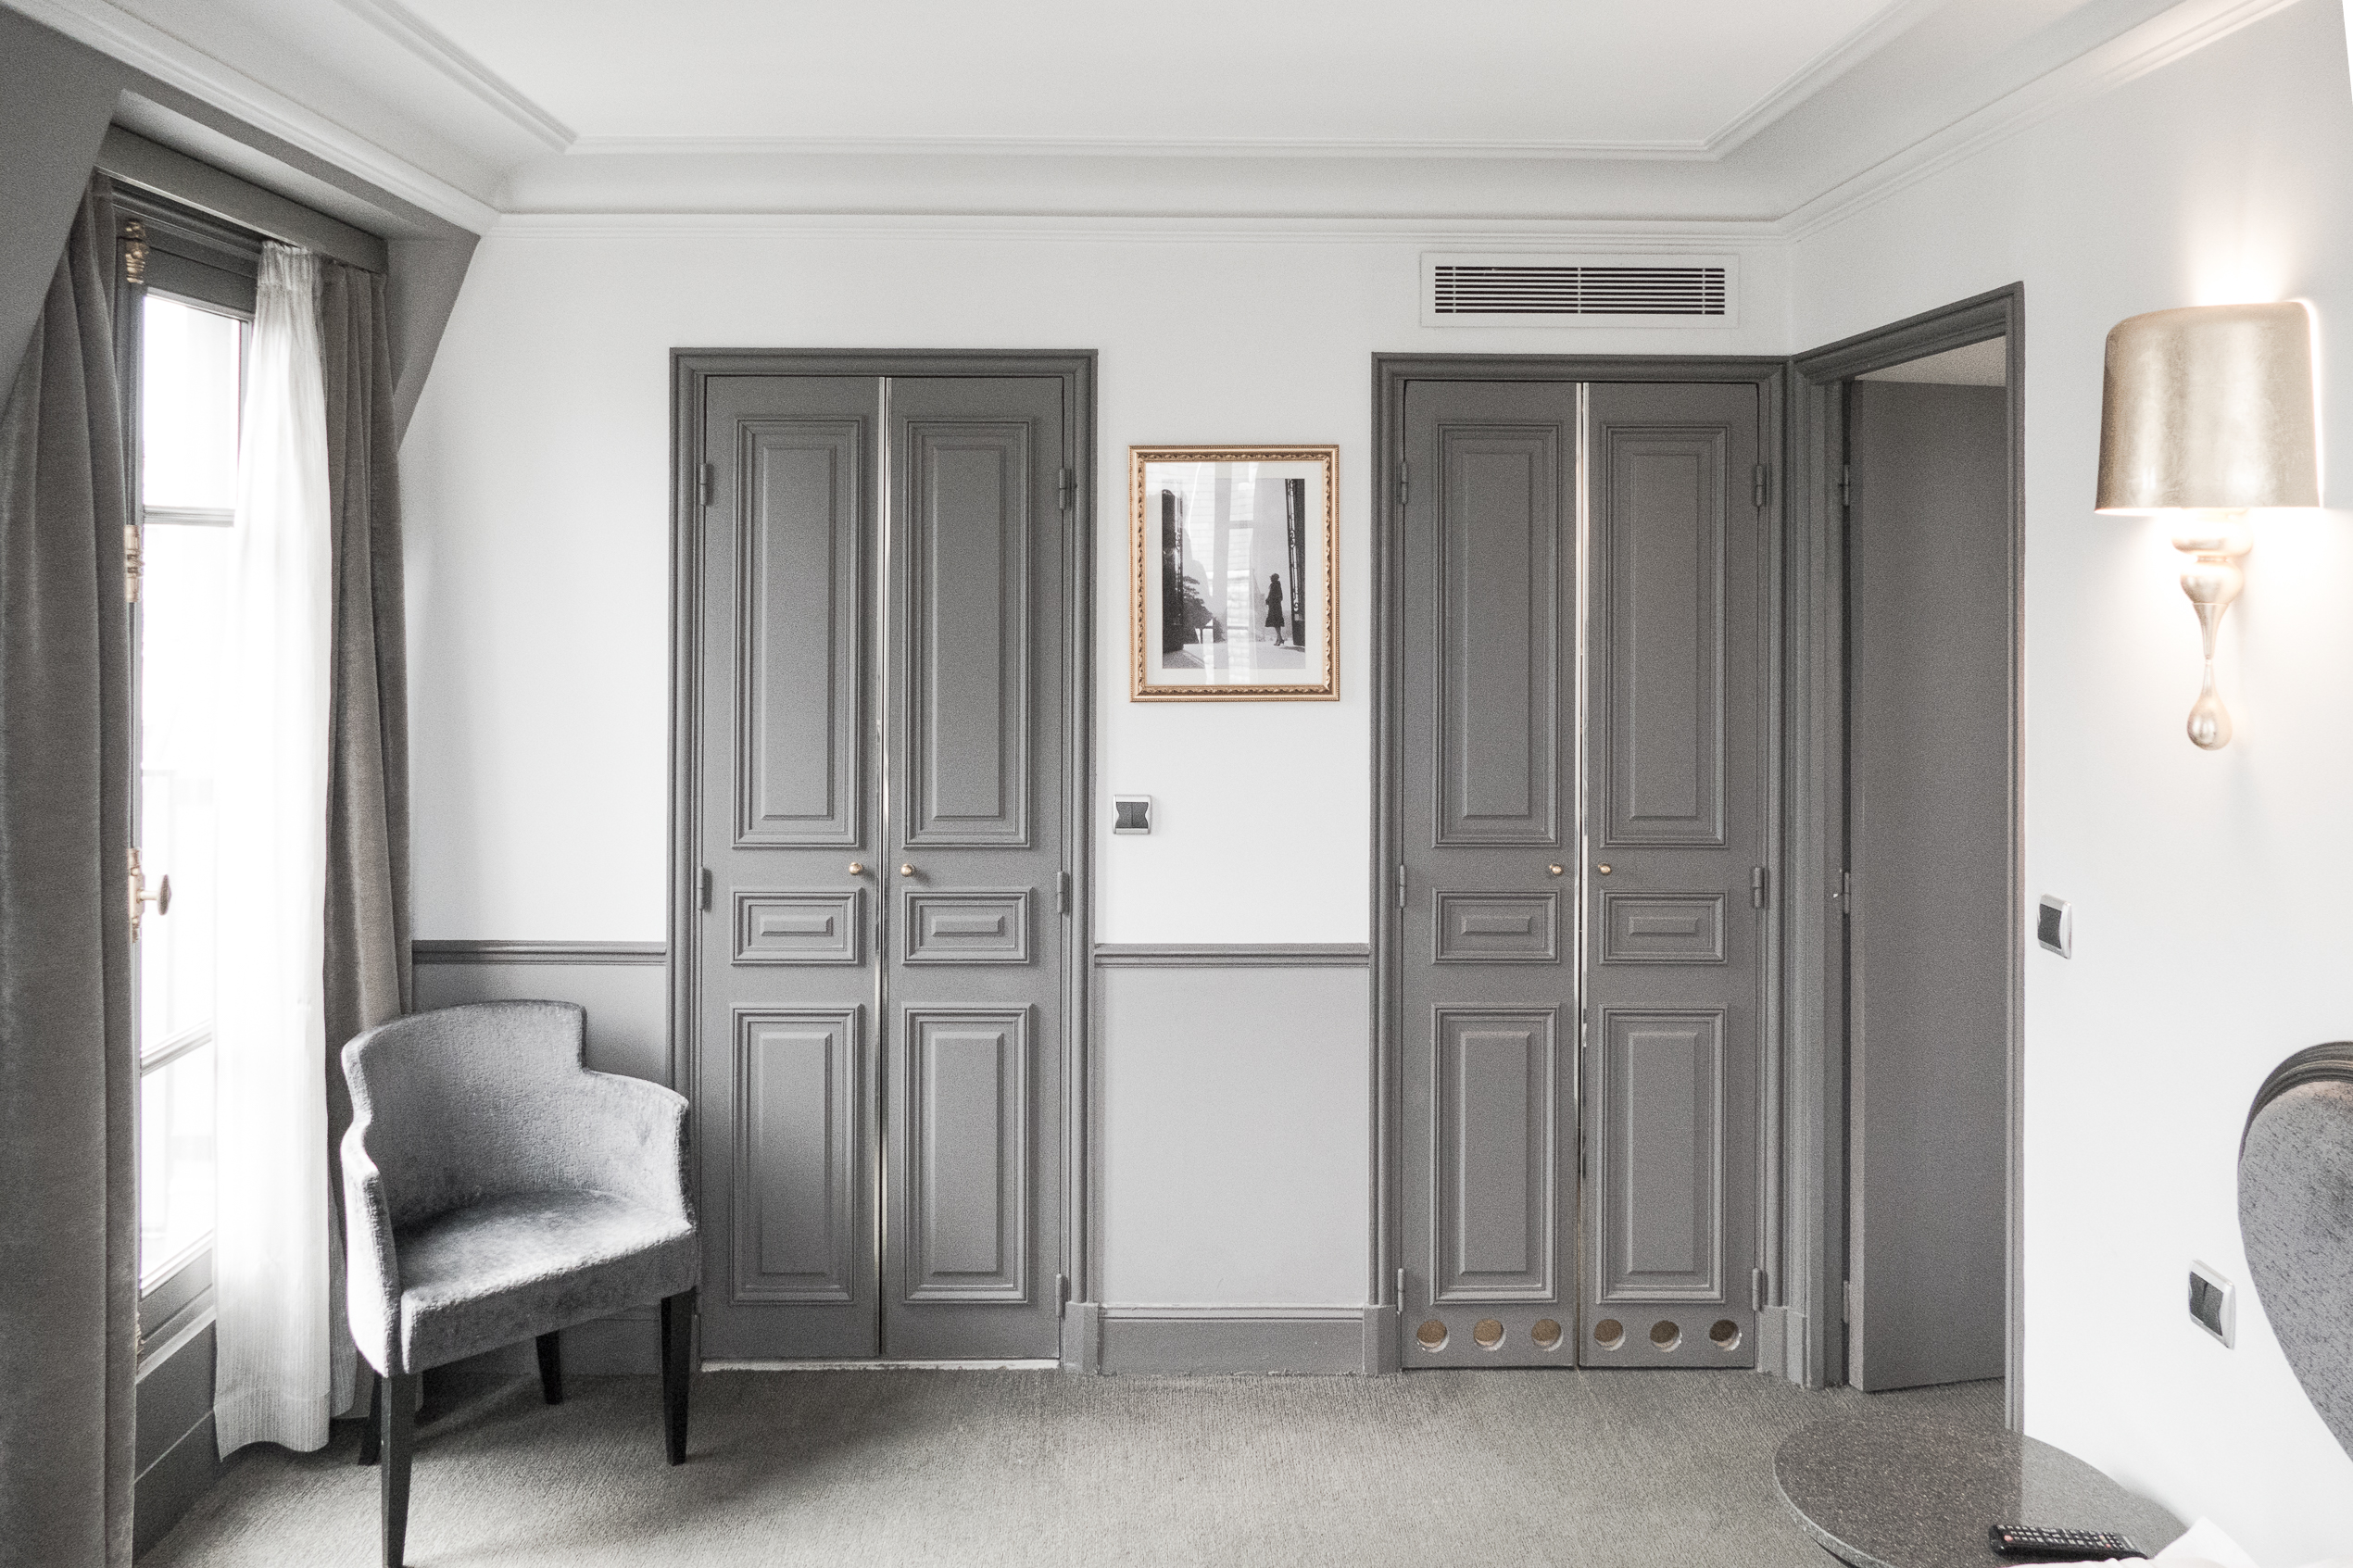 Paris – Lumen Hotel